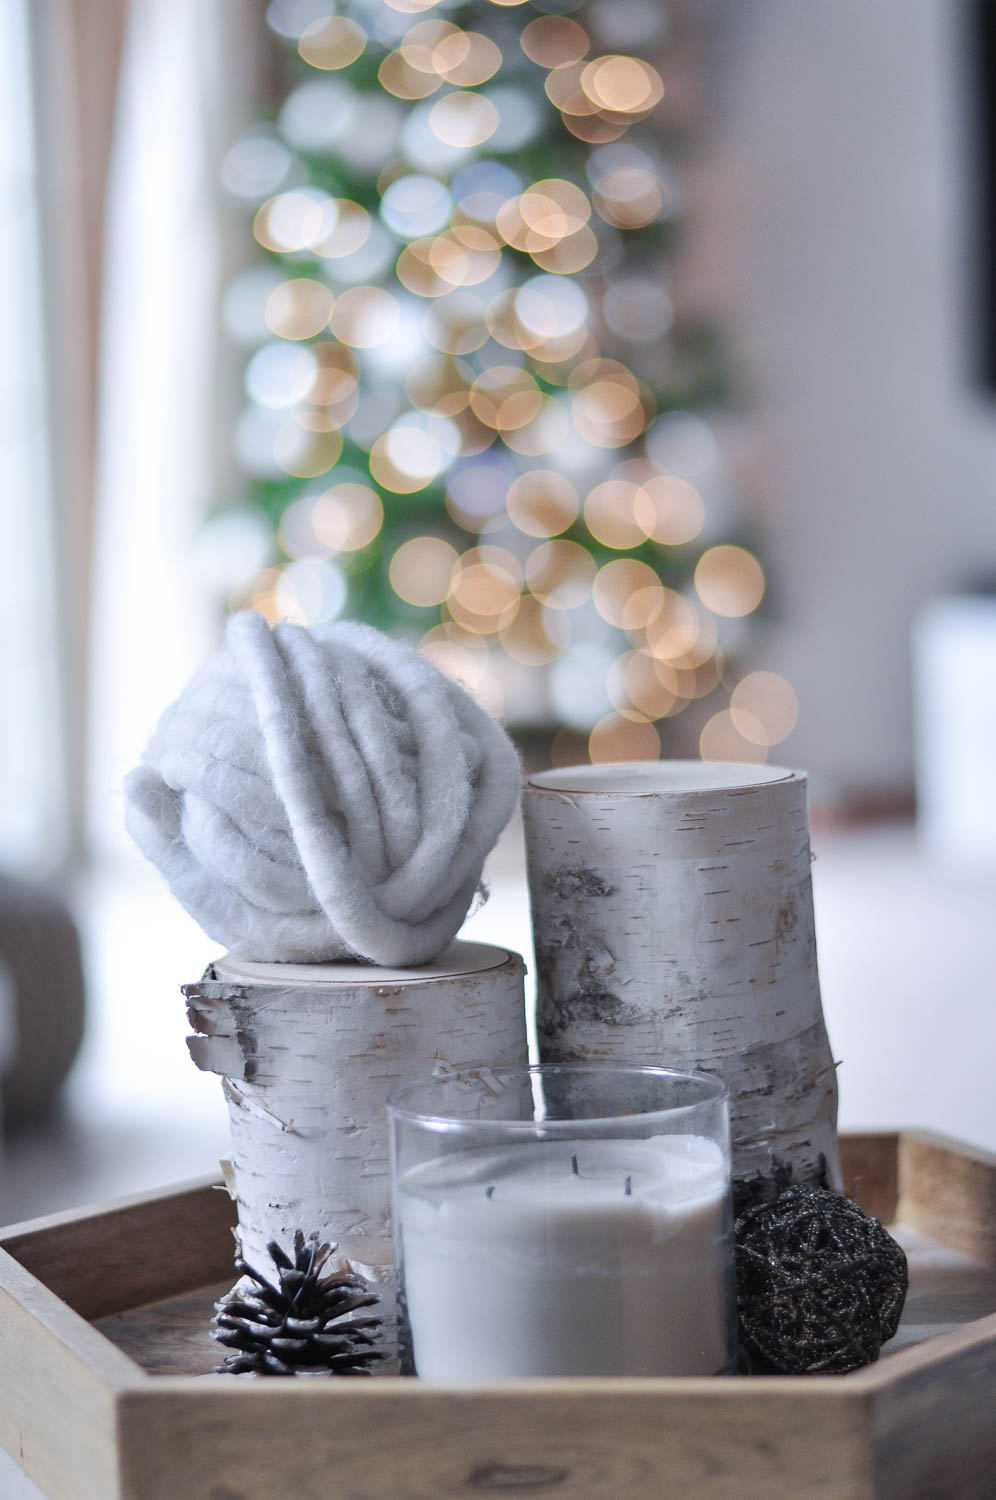 Erin Stanczyk | Lifestyle Design | EatMoveRest | A White Christmas: Holiday Home Decor